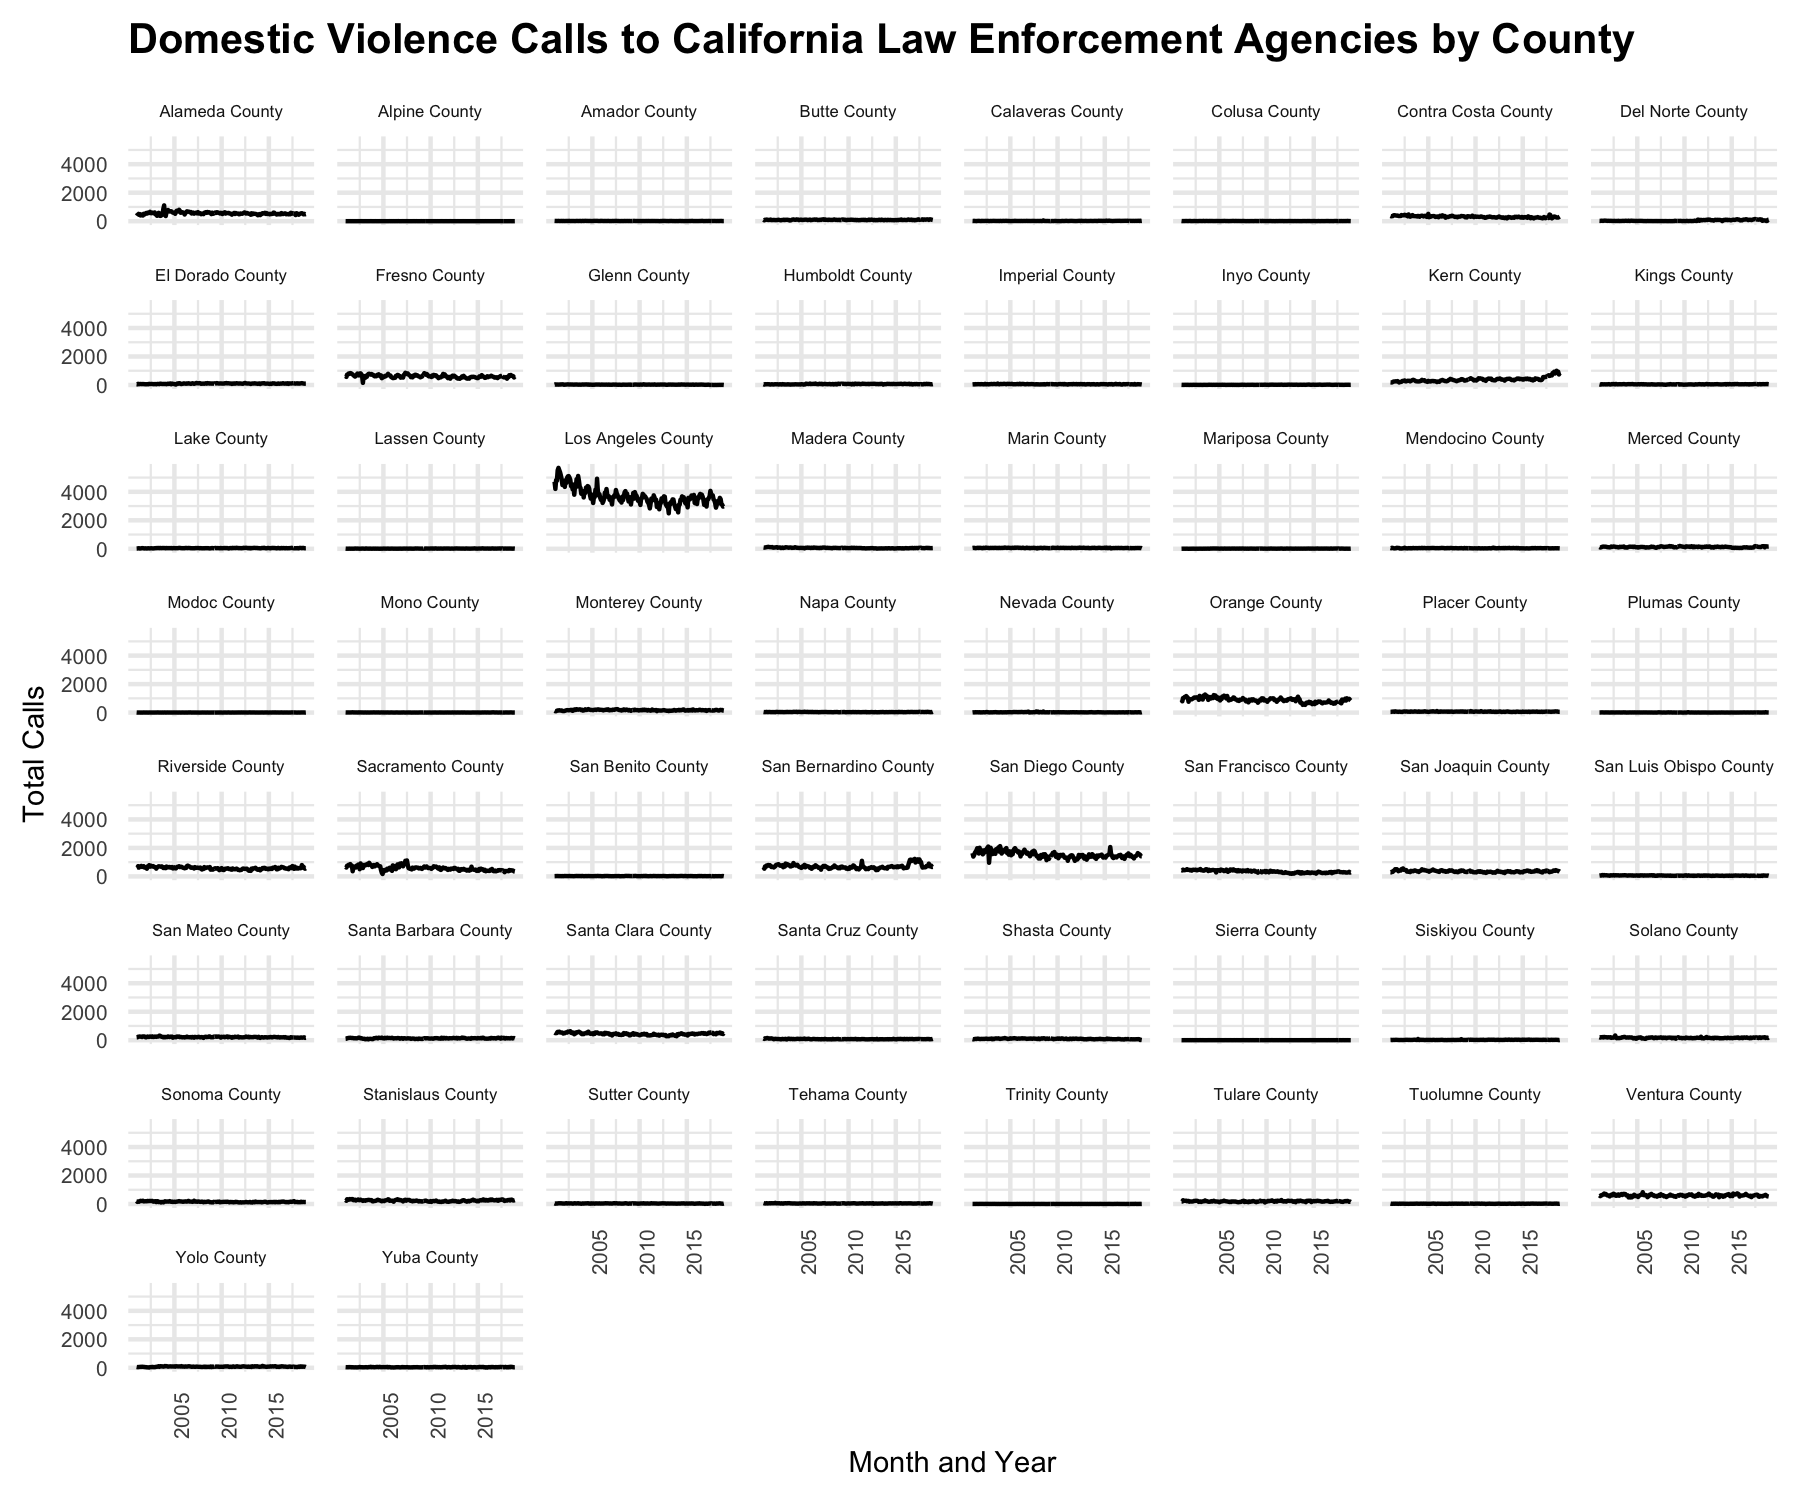 Figure 7: R output when student plots the total domestic violence calls to California law enforcement agencies over time divided by county.